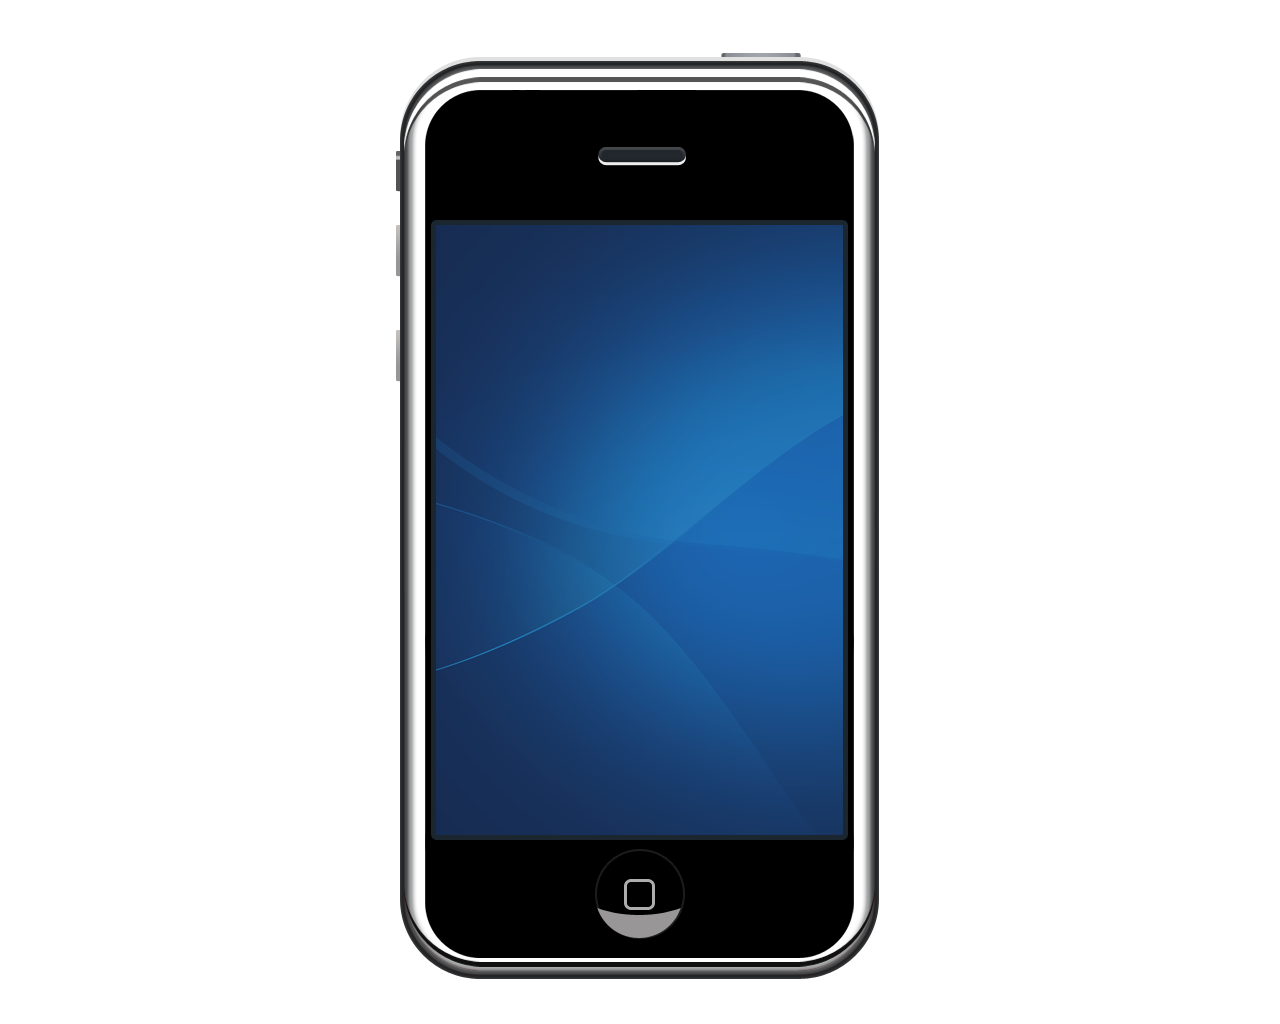 Iphone clipart file, Iphone file Transparent FREE for.